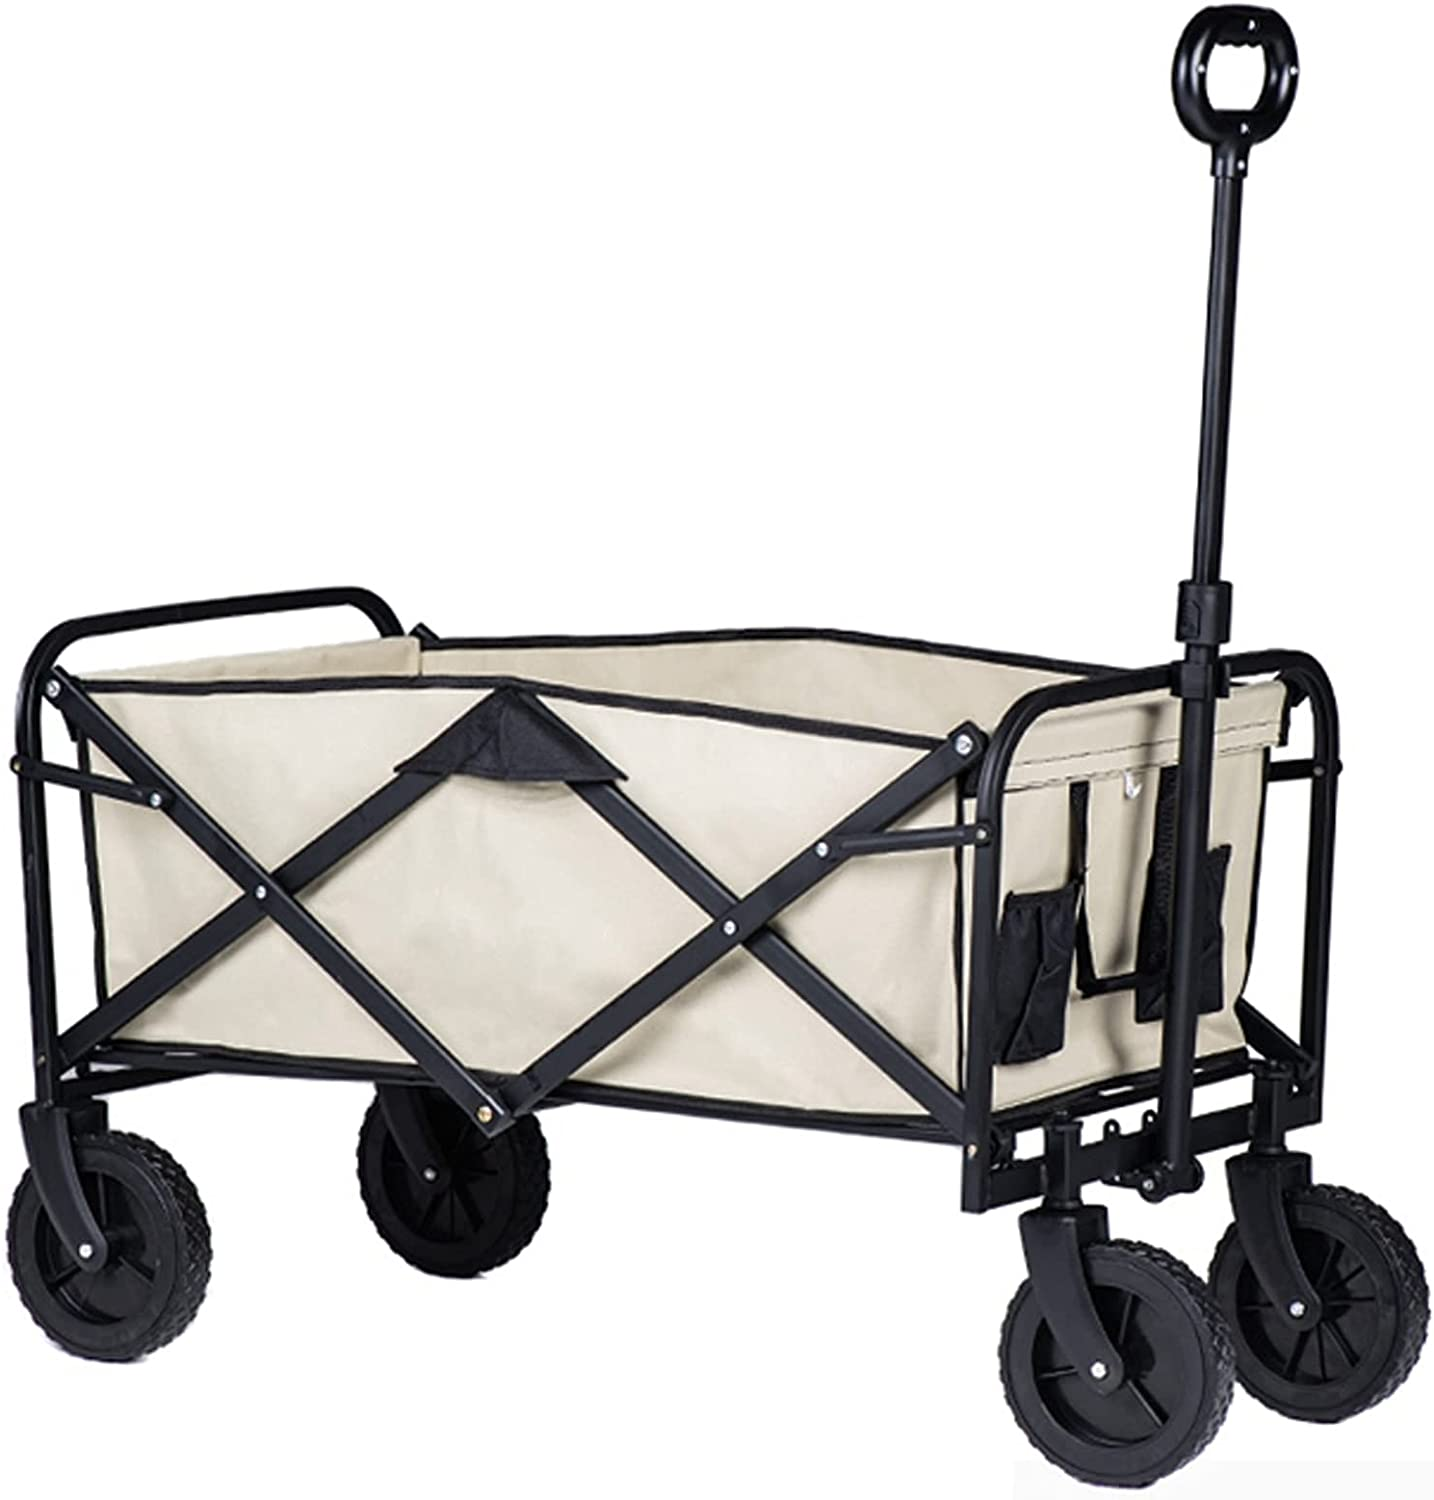 Middle Folding Garden Max 56% High quality OFF Cart Transport for Wheels Beach ° 360